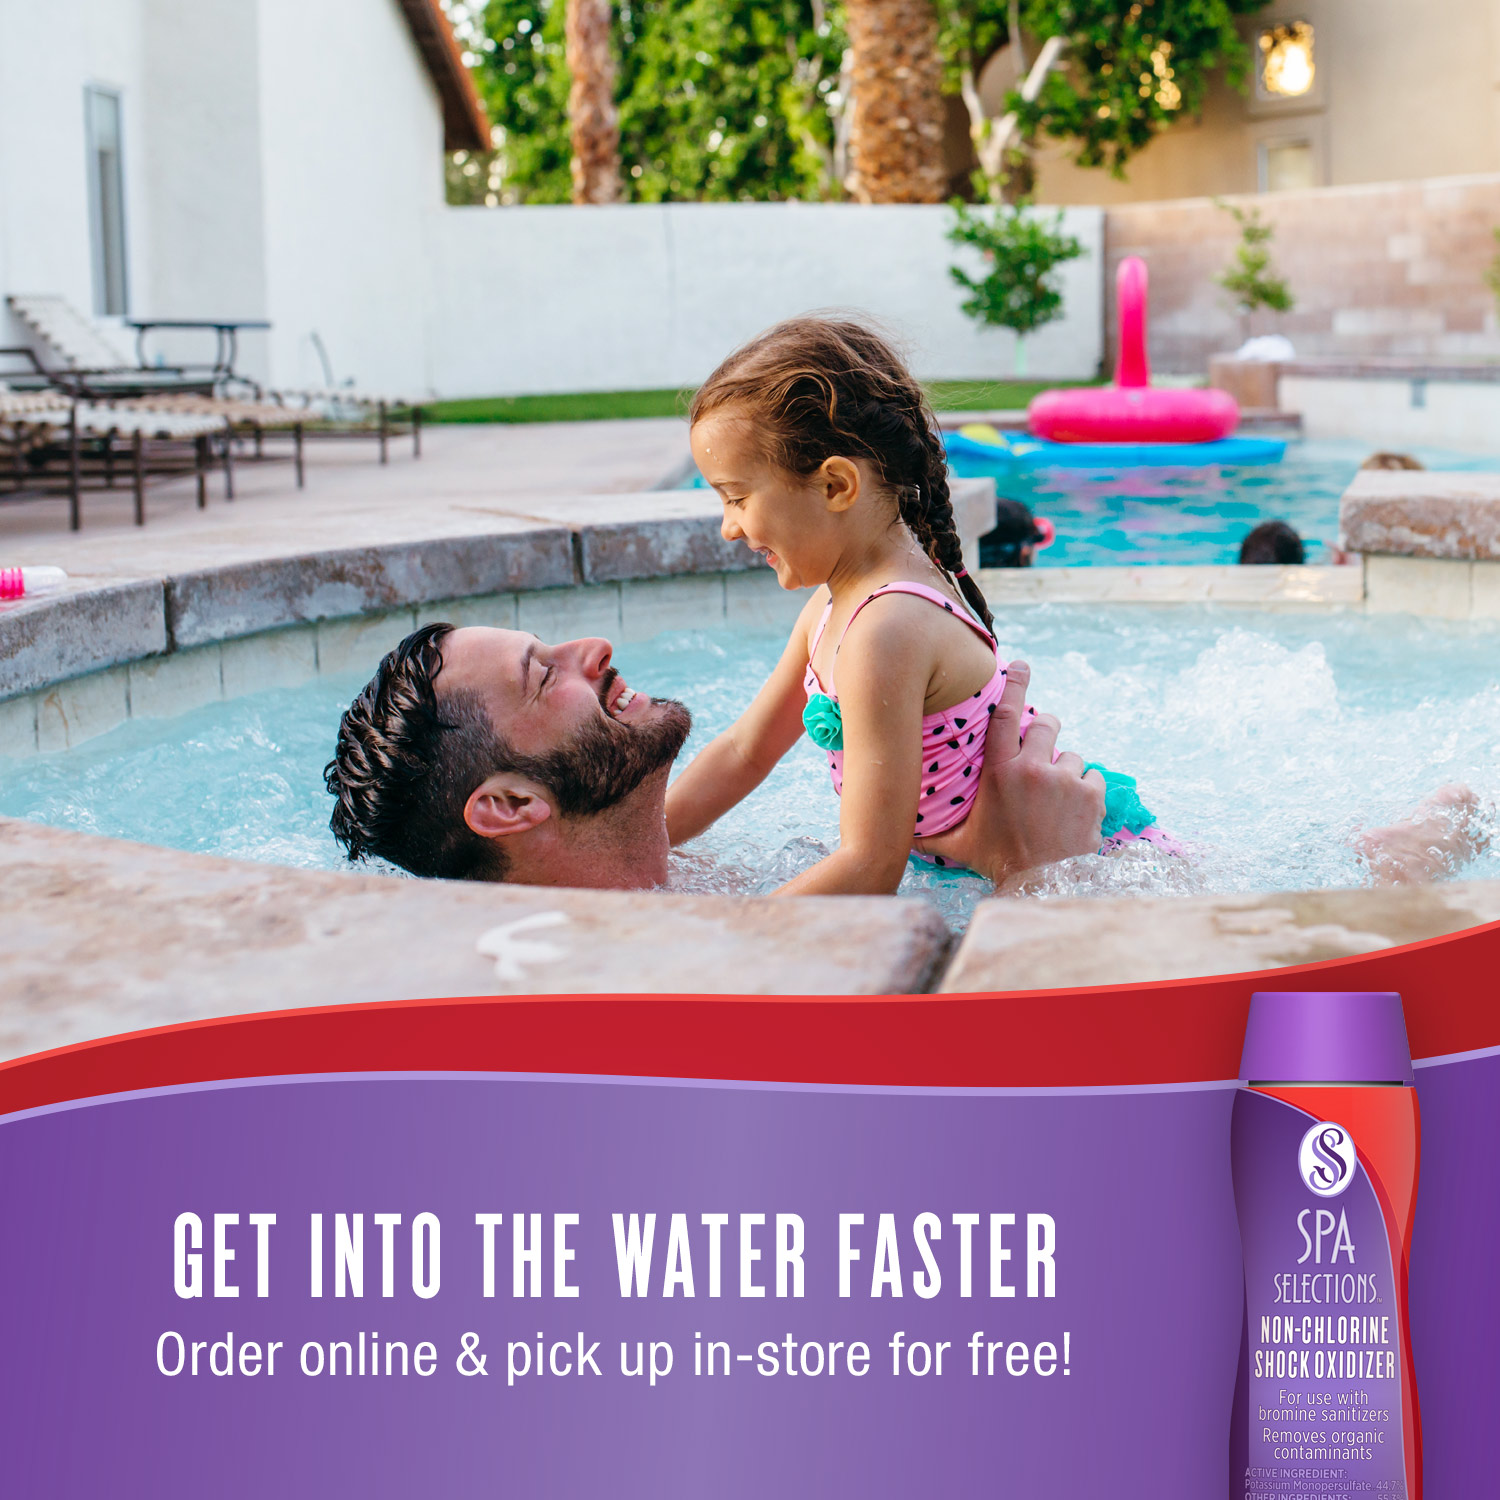 Father and daughter enjoying outdoor hot tub. Get into the water faster with Spa Selections non-chlorine shock oxidizer, order online and pick up in-store for free!